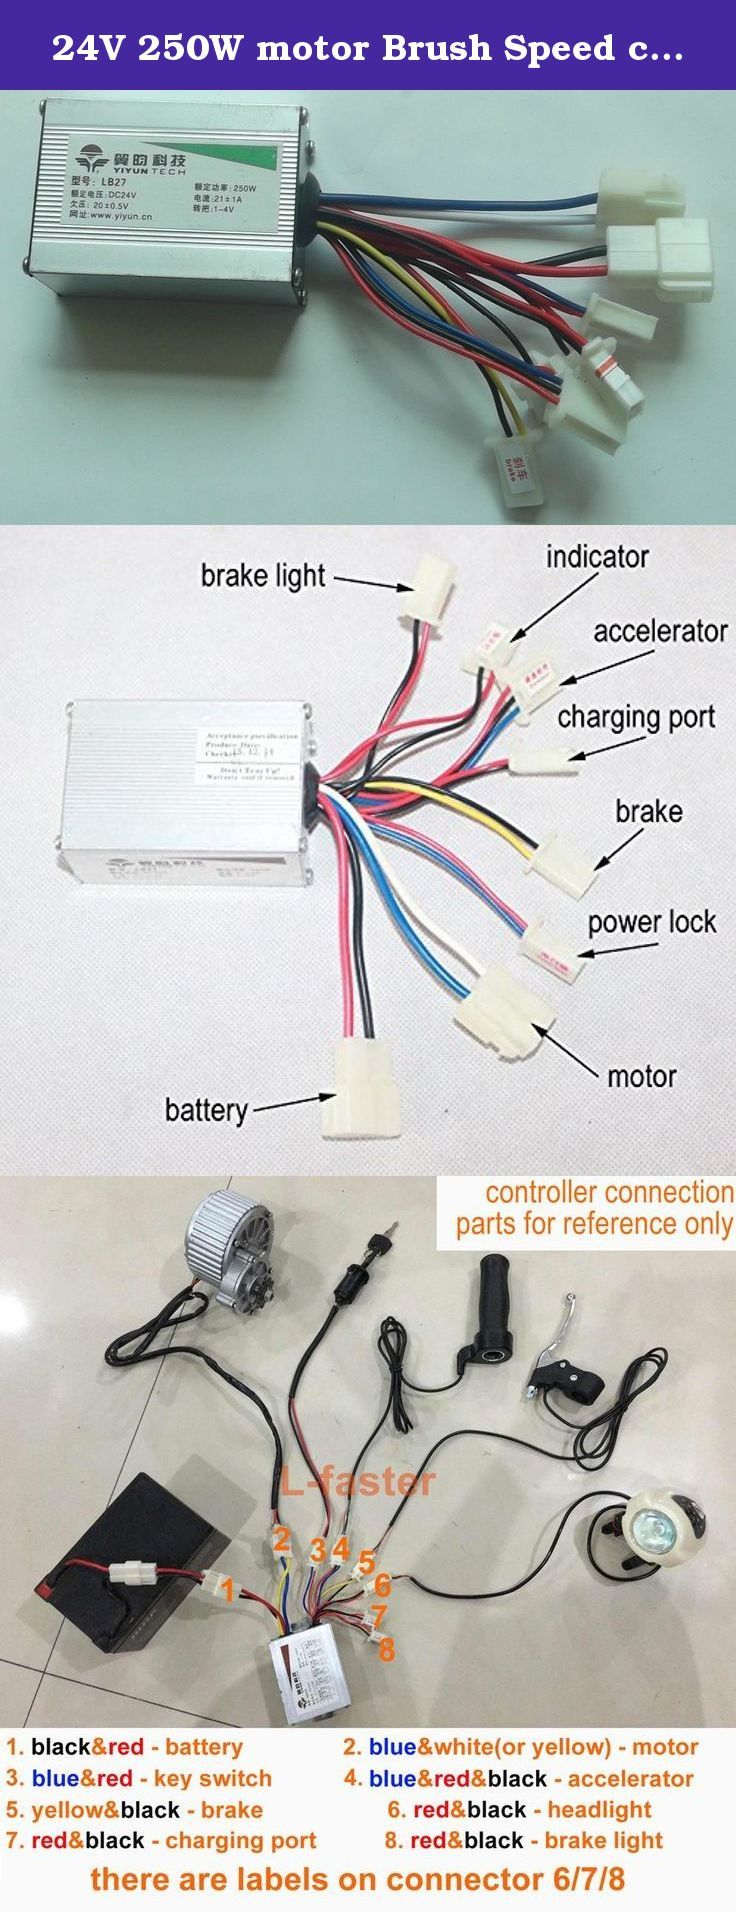 9cb80219f9d0f2c4e4c59bb2df6f9e9f 24v 250w motor brush speed controller for electric bike bicycle